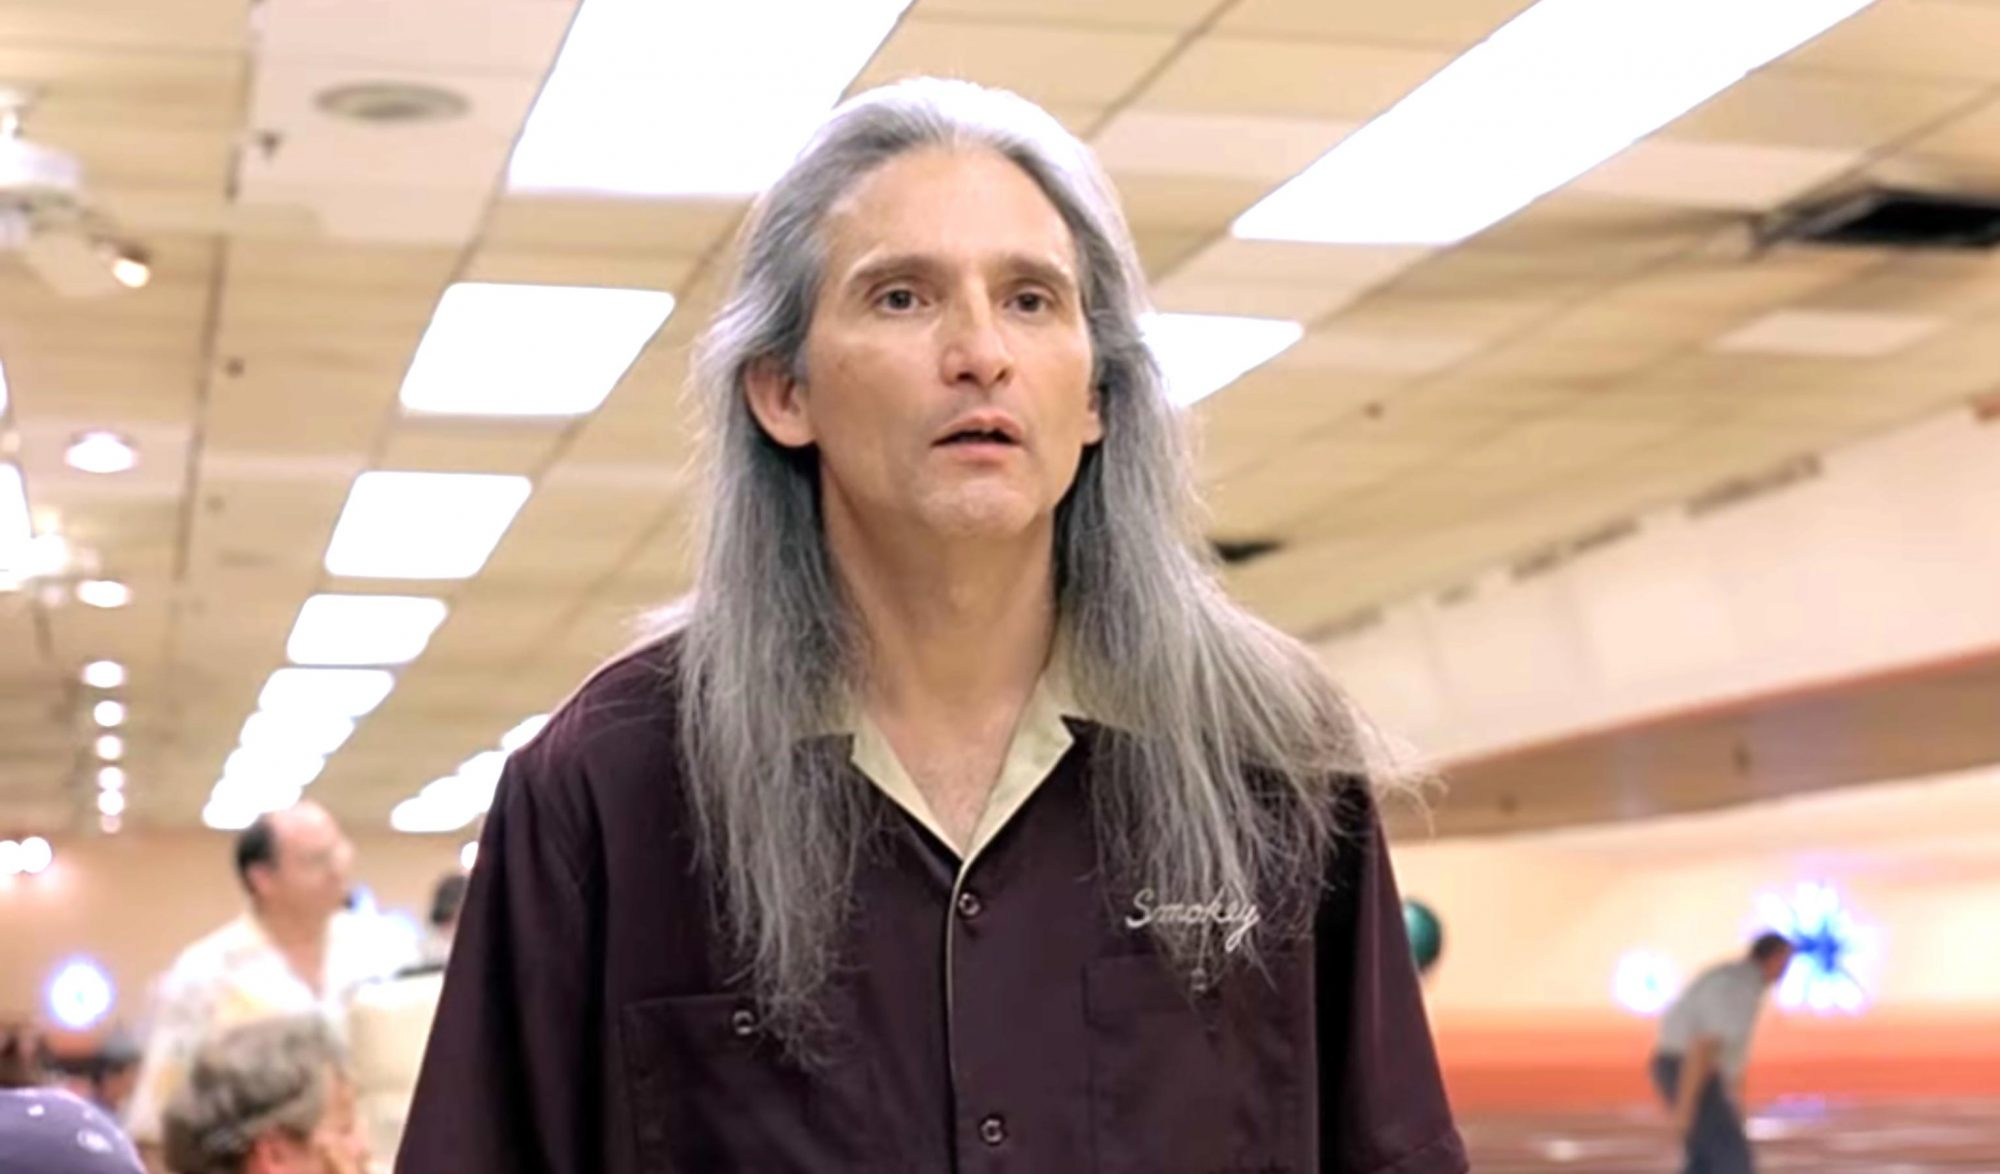 The-Big-Lebowski-Jimmie-Dale-Gilmore